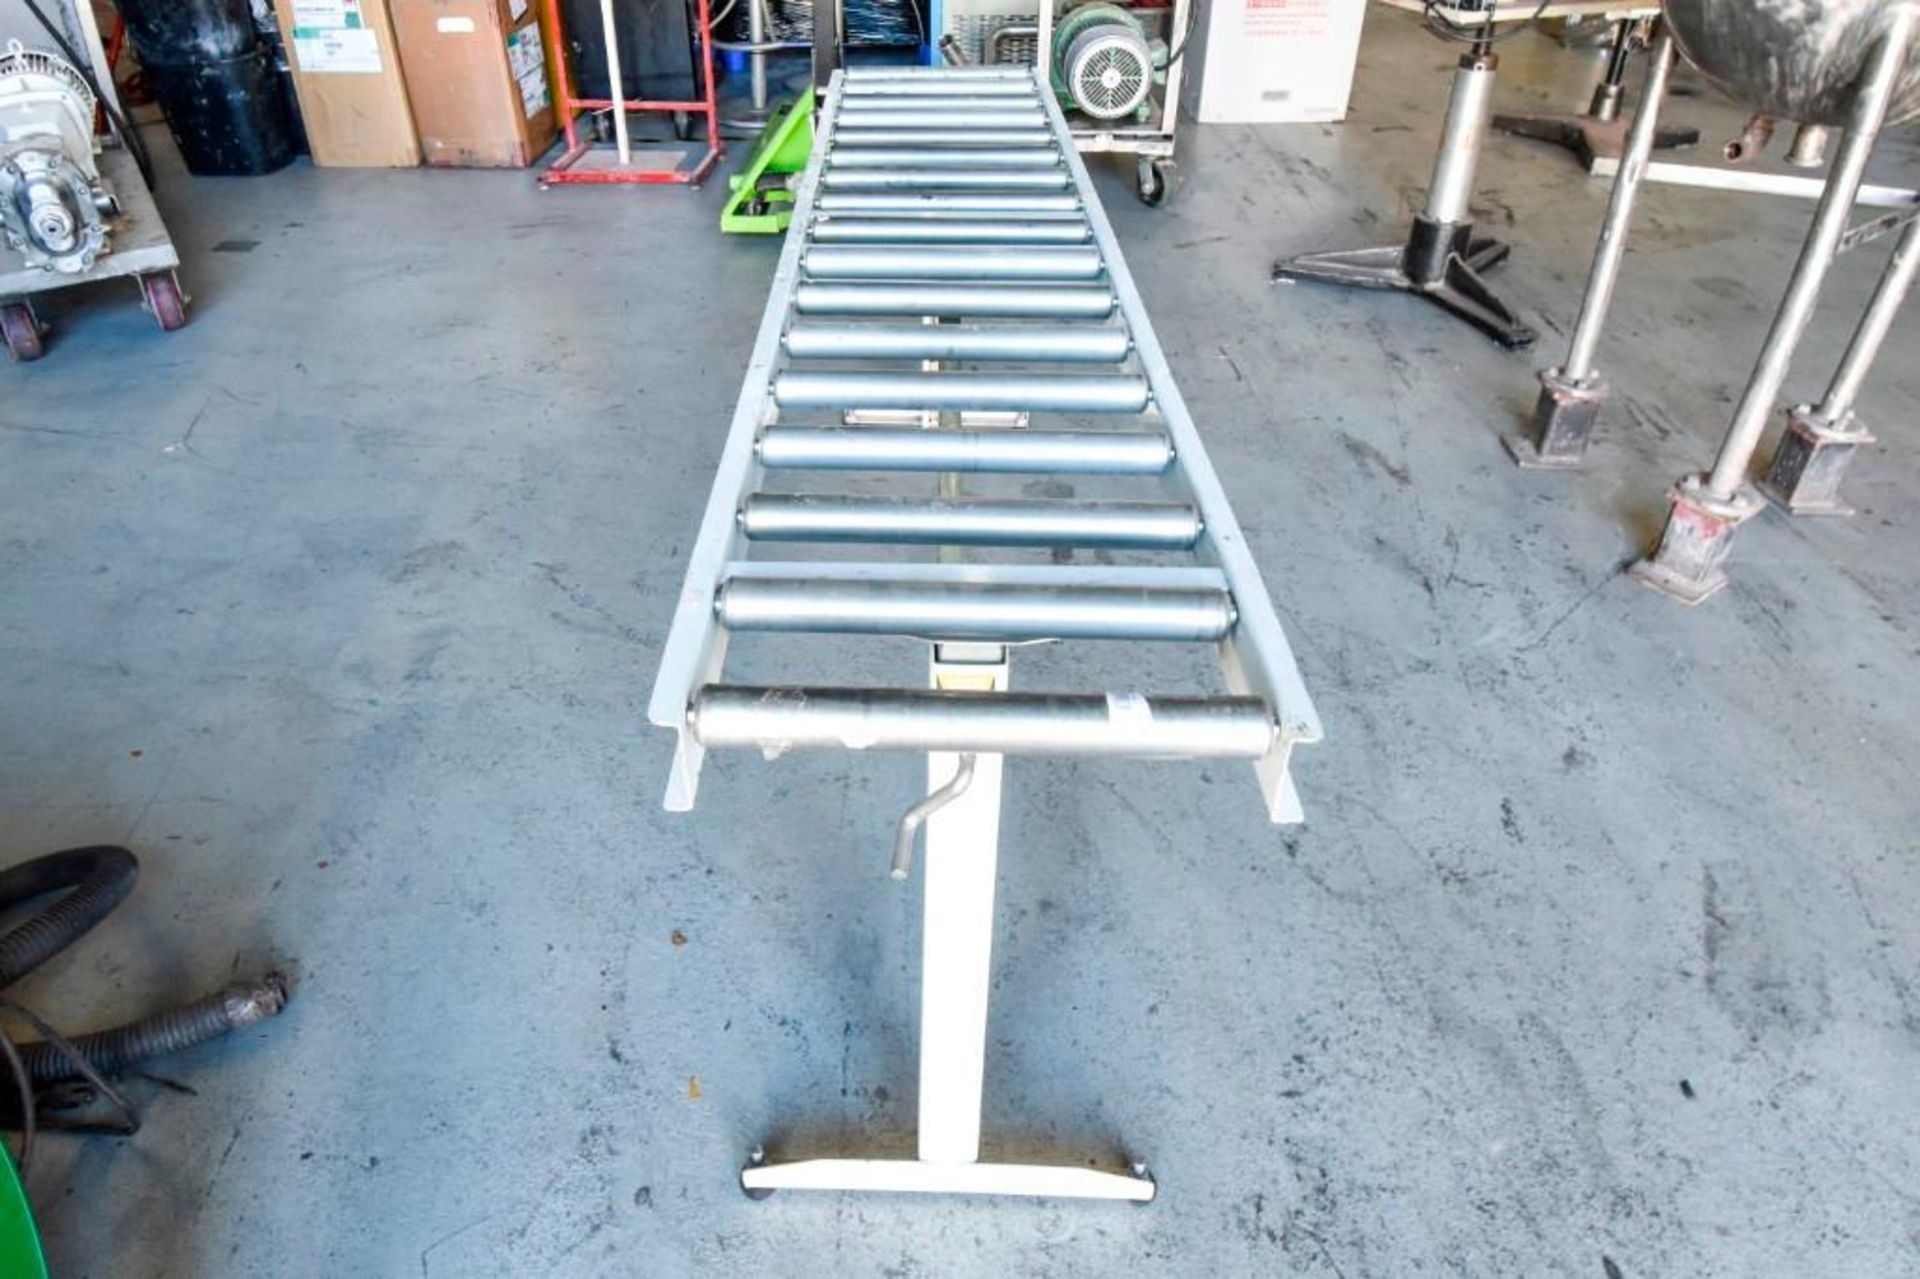 Super Duty Portable Folding Roller Conveyor 5'7'' - Image 9 of 11